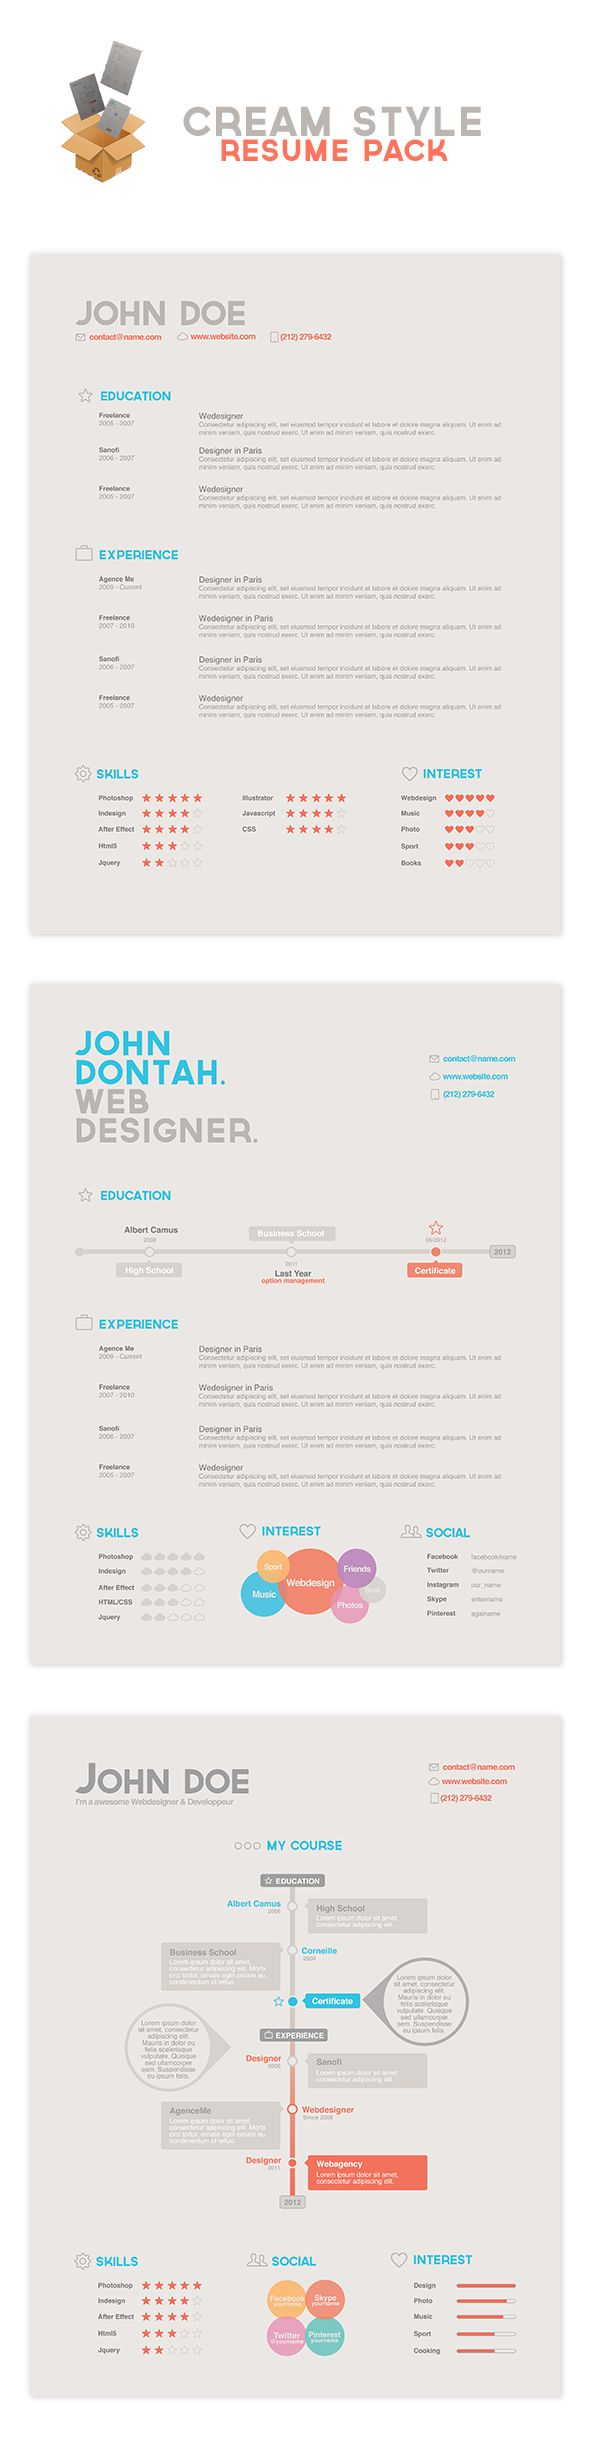 Unique Resume Ideas Magnificent 103 Best Resume Design Images On Pinterest  Resume Design Resume .